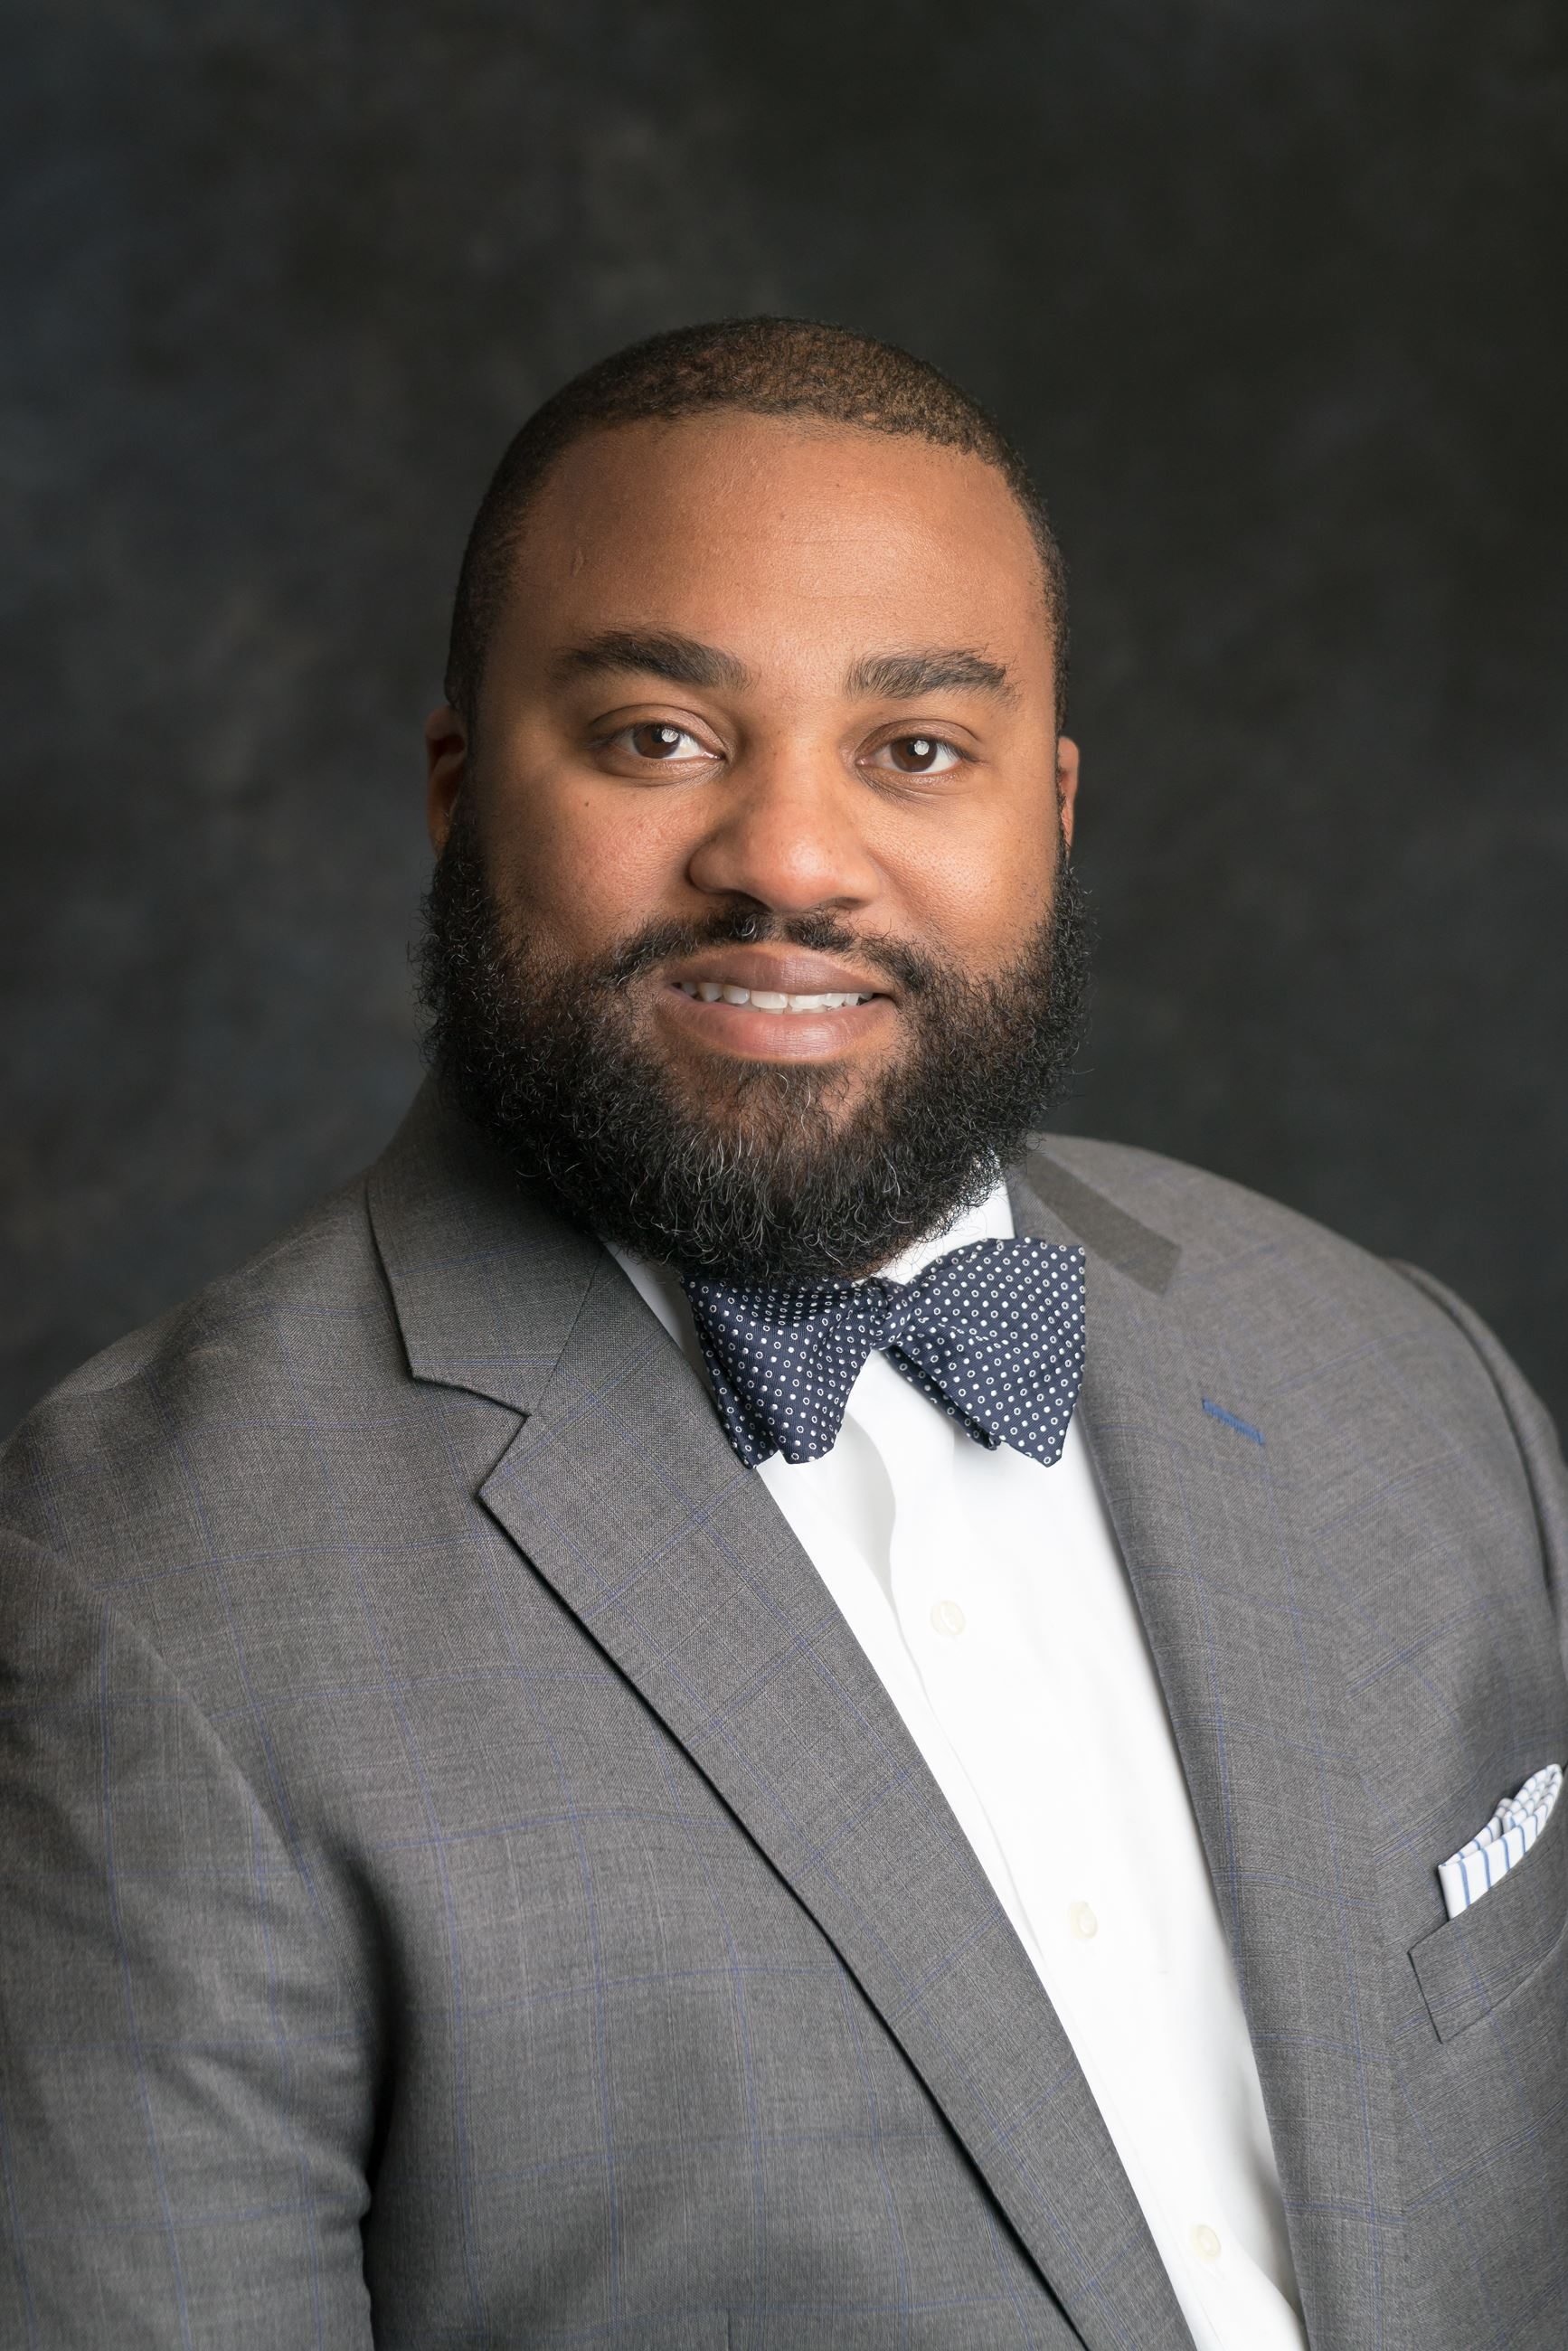 City Council Member Joseph Jones